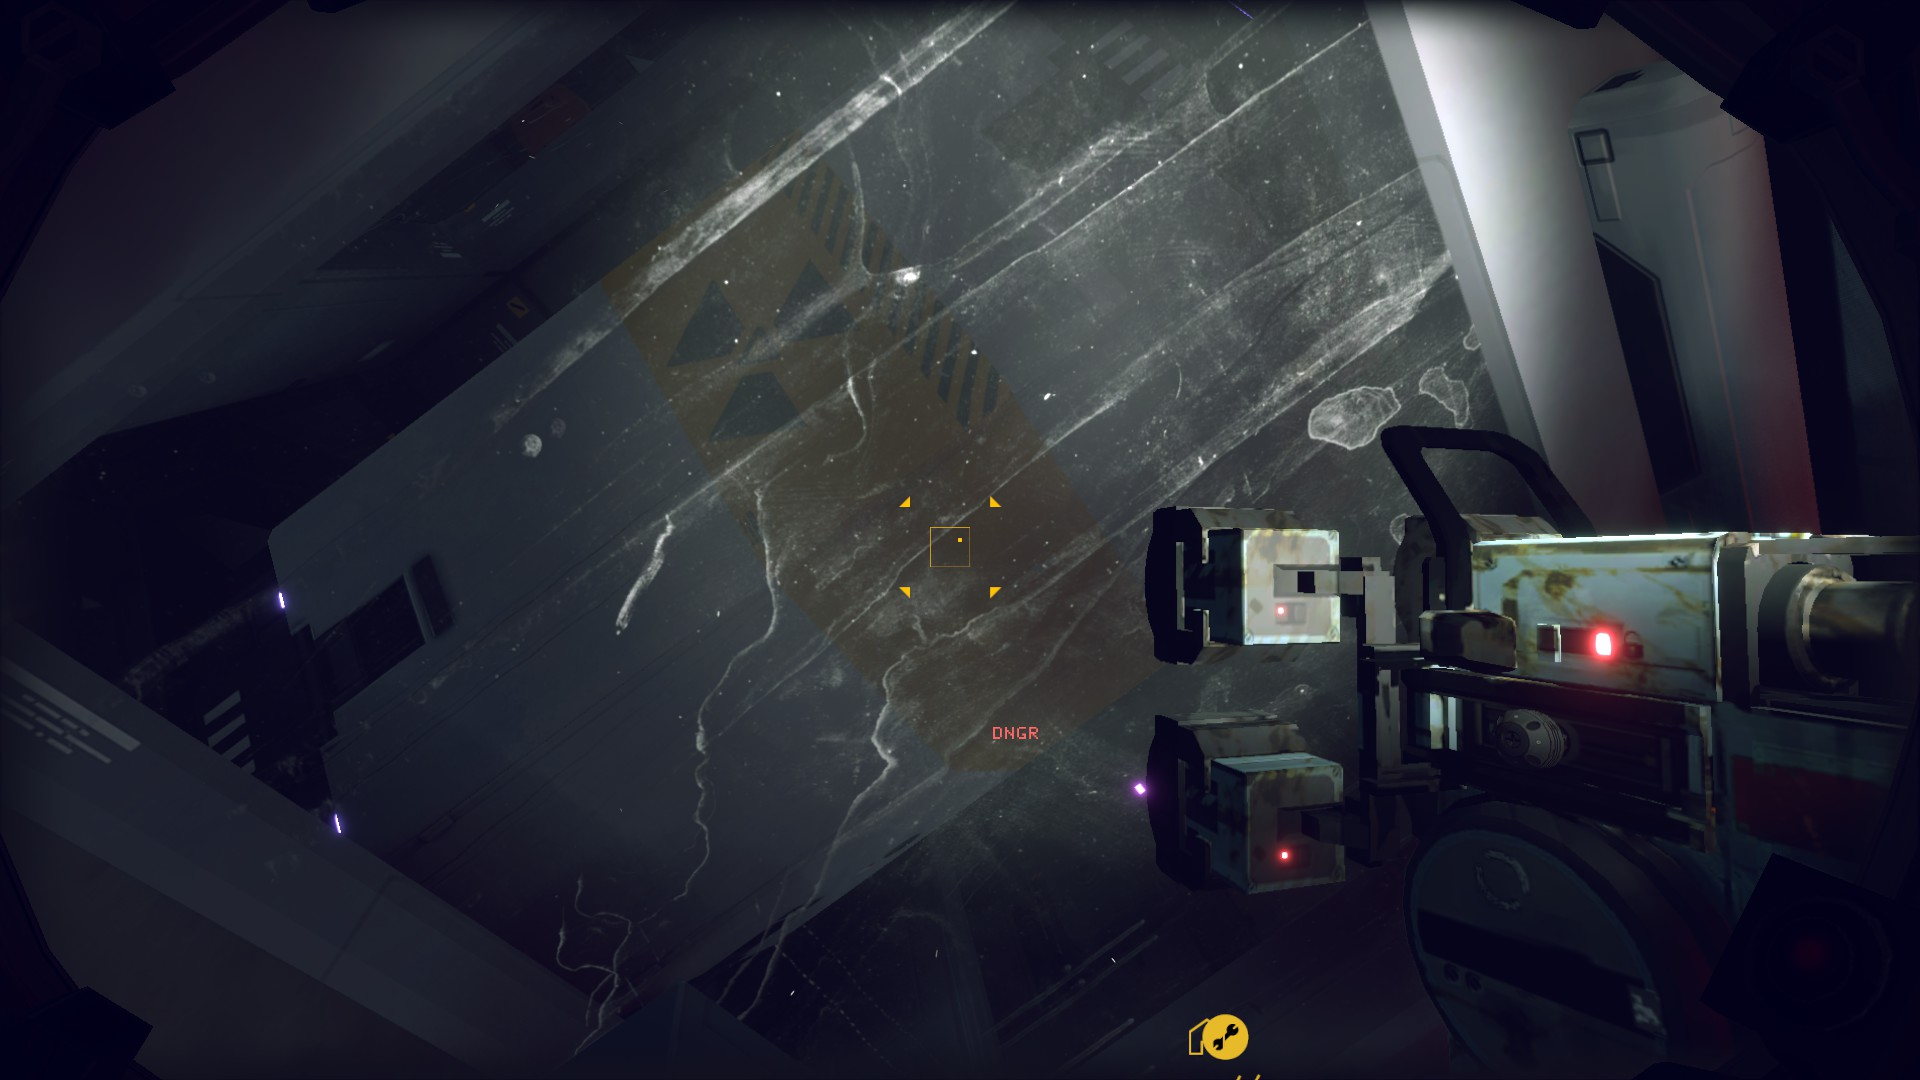 A screenshot of an extremely dirty, smeary window in Hardspace Shipbreaker